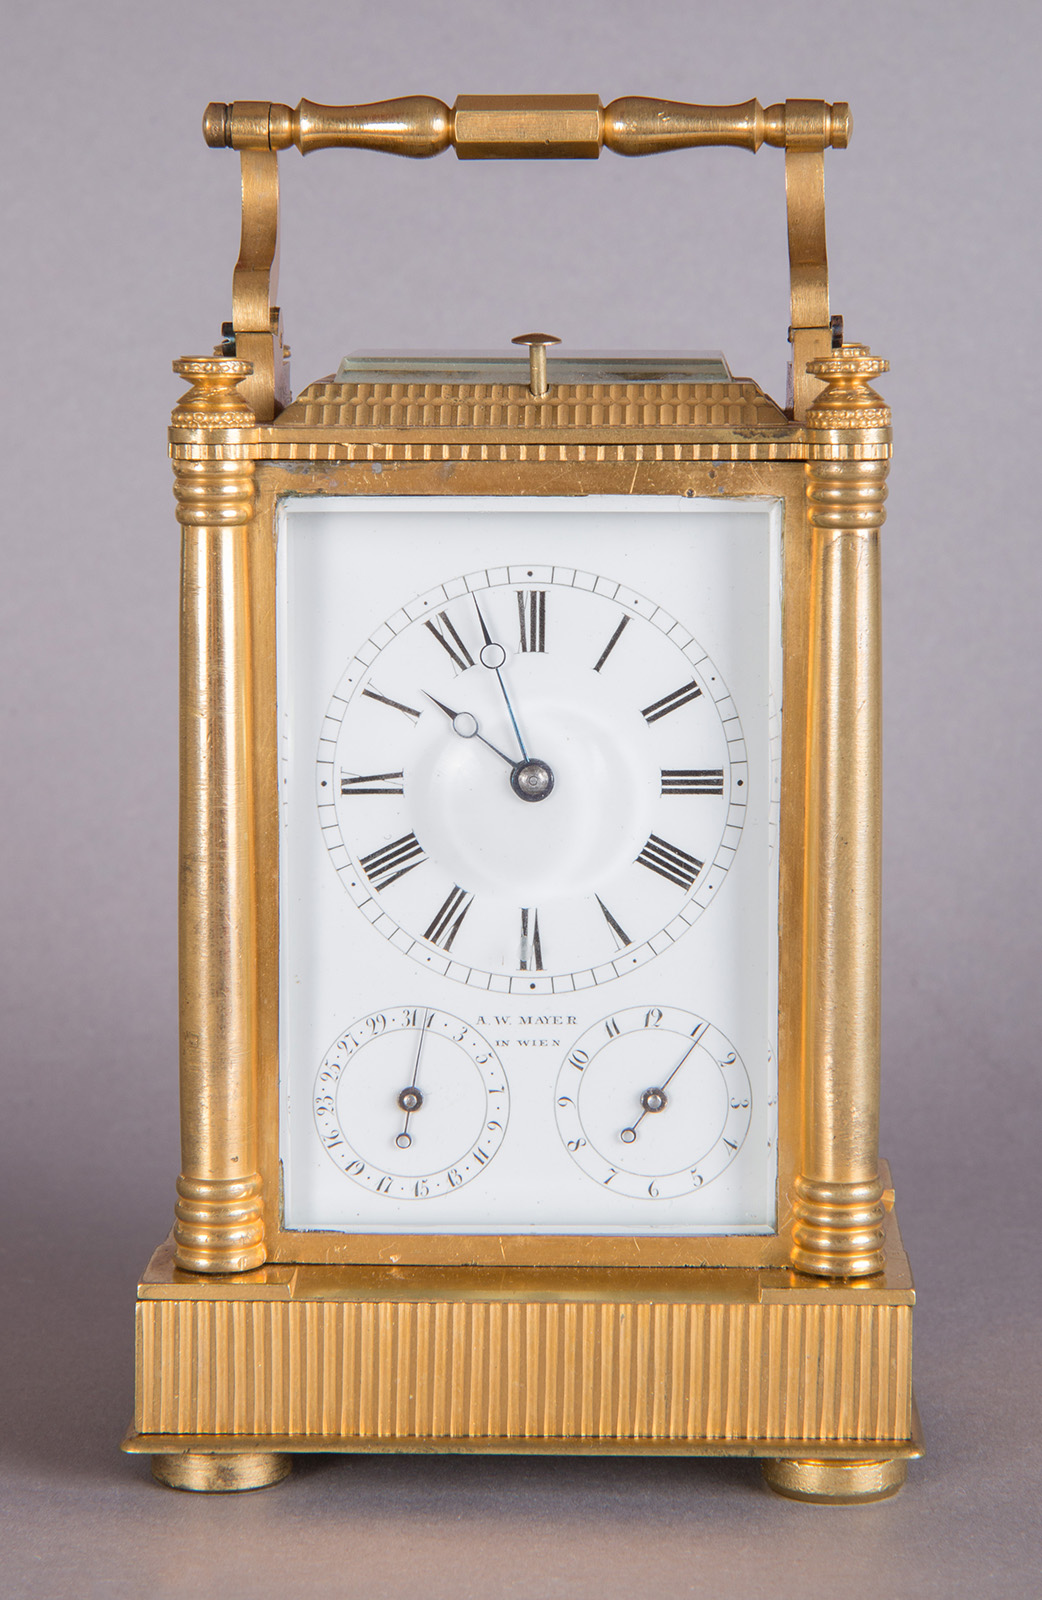 Carriage clock by Andreas W. Mayer, 1901.